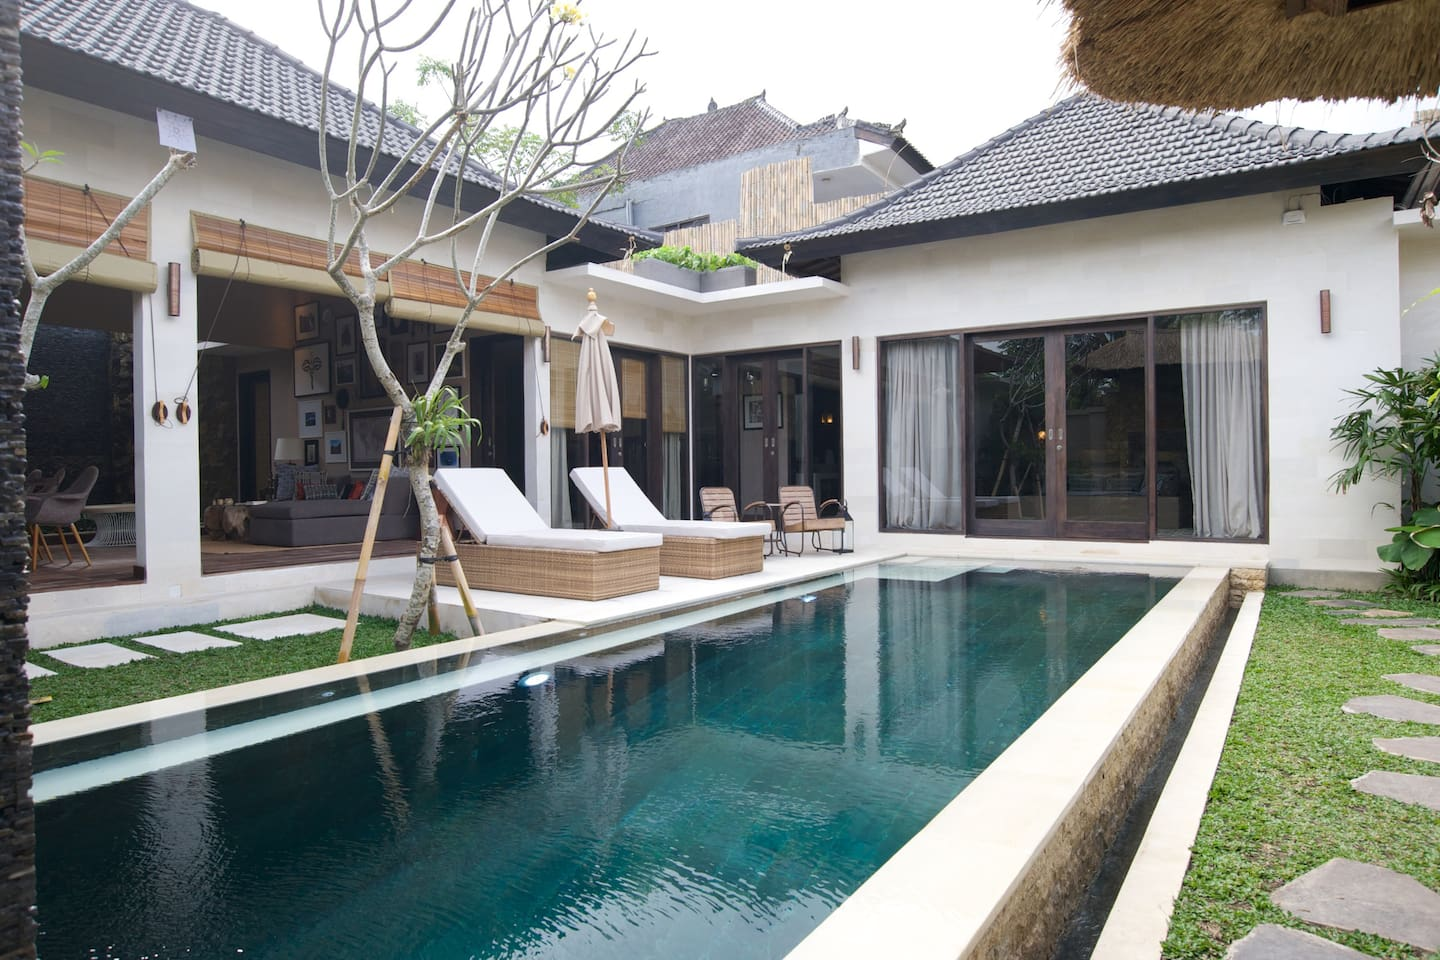 9 meter pool: deep end, shallow end and seating built all around.